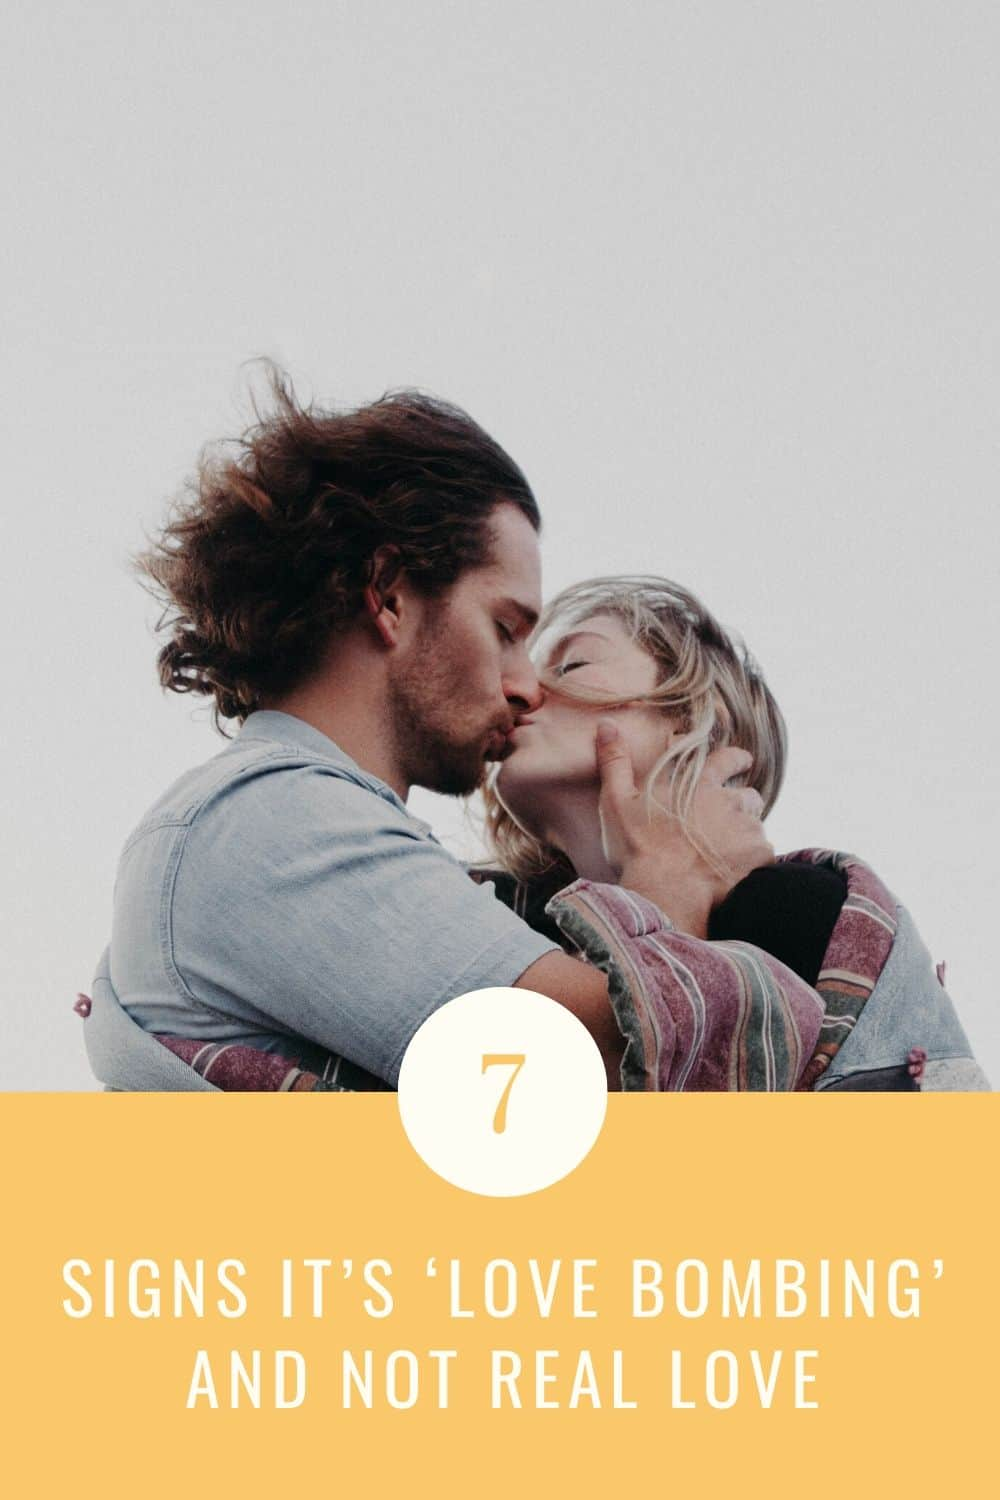 SIGNS IT'S 'LOVE BOMBING' AND NOT REAL LOVE